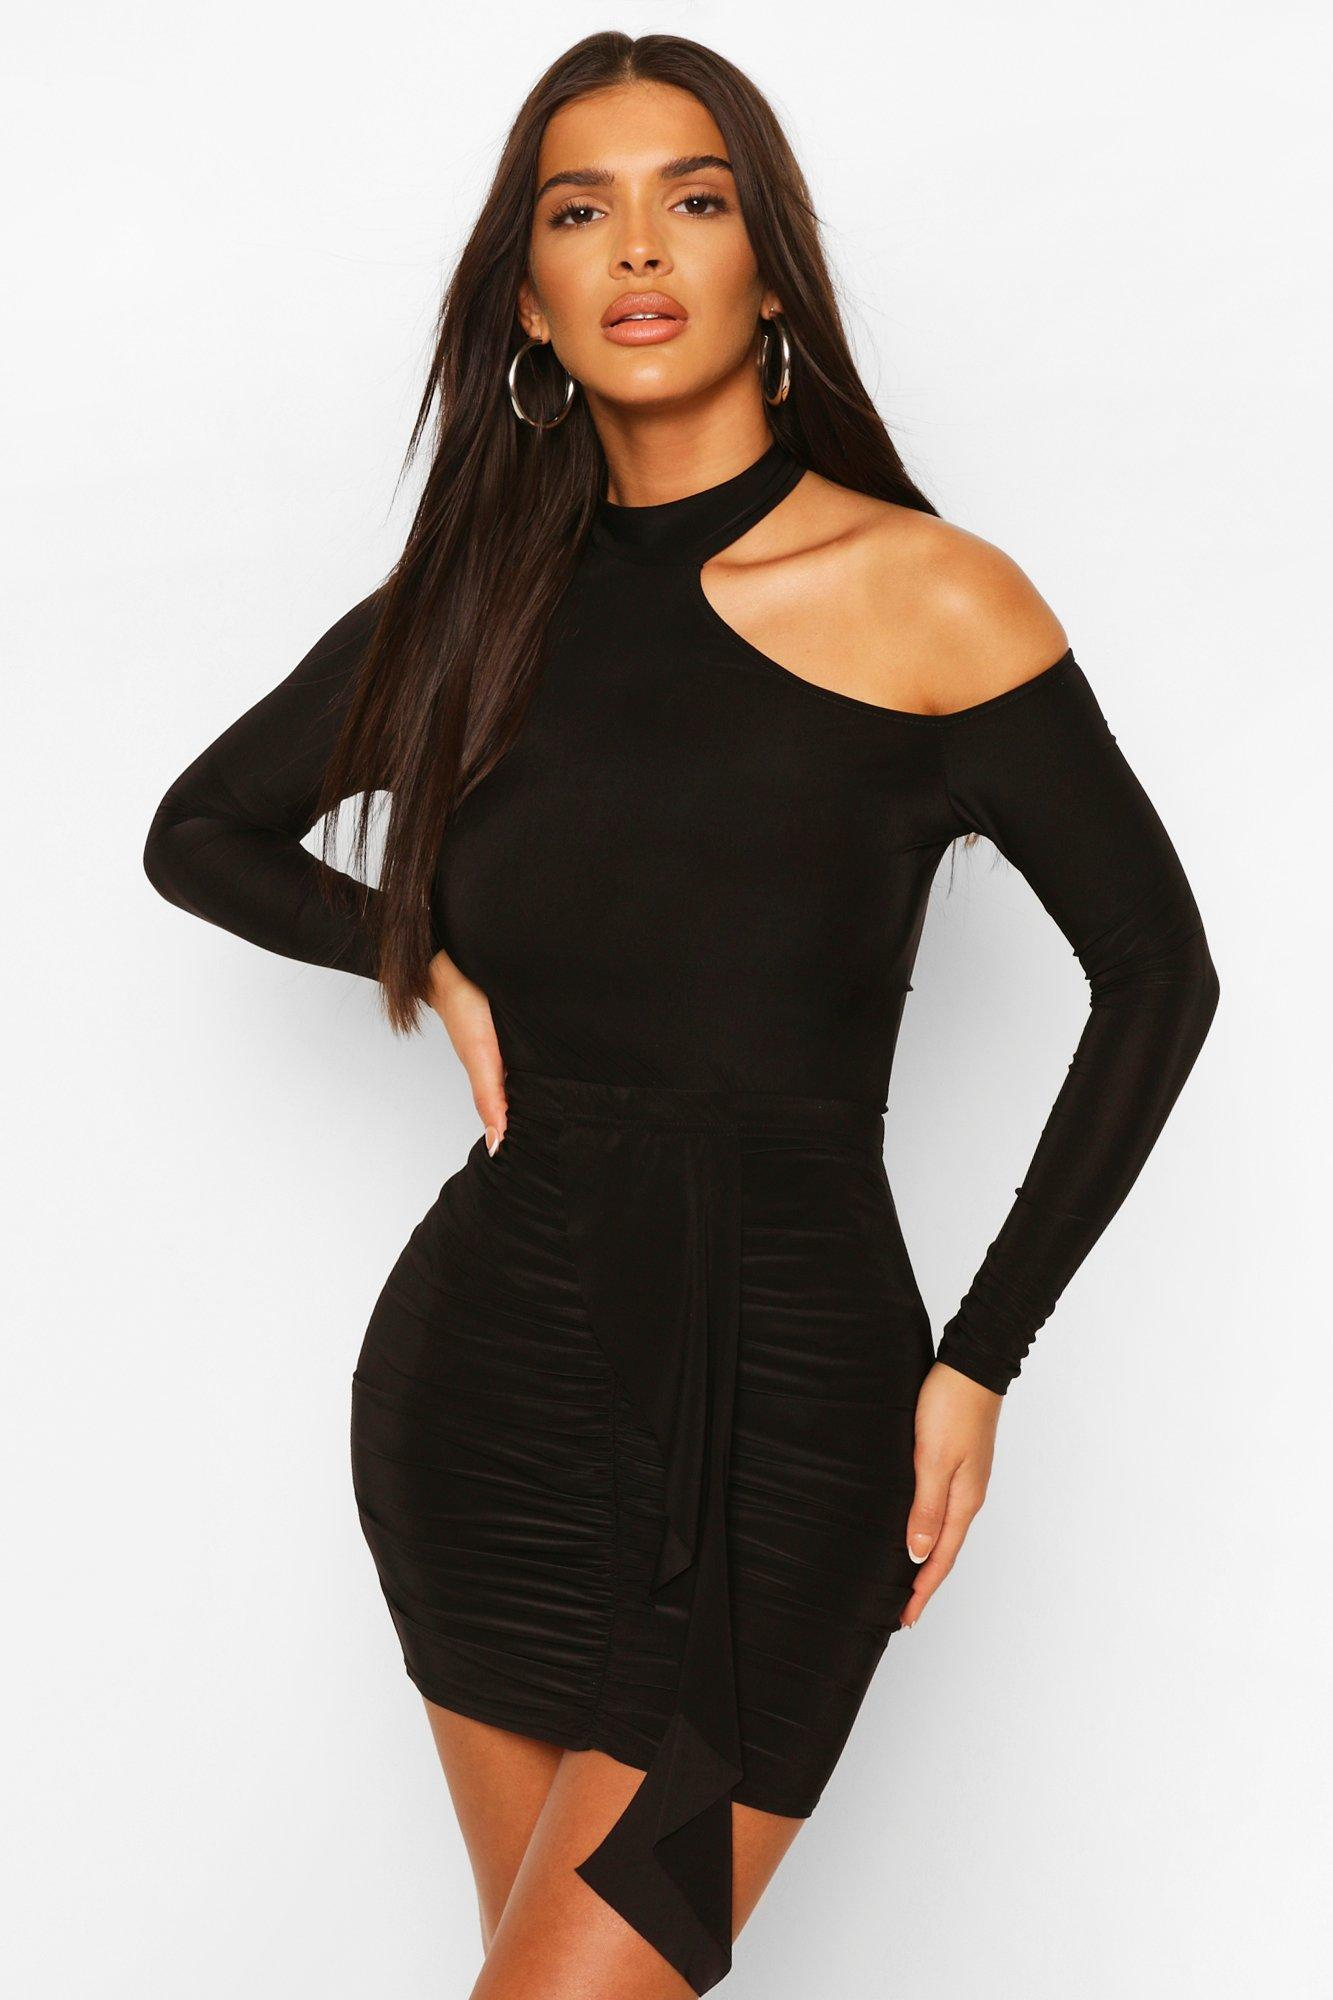 boohoo Womens Cut Out Neon Body Top - Black - 14, Black